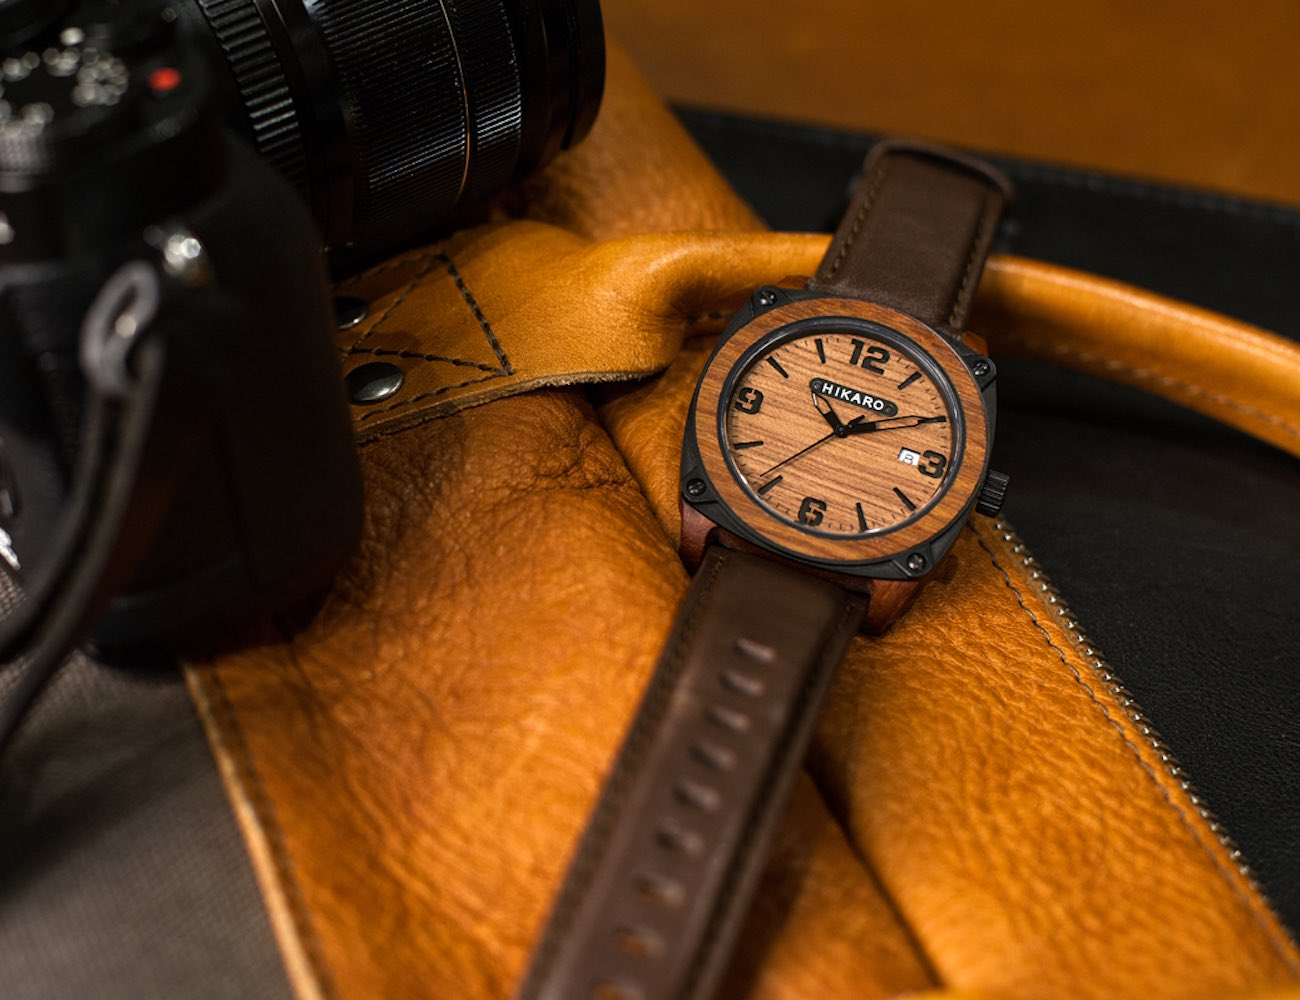 HIKARO – Modern Industrial Take on Wooden Watches